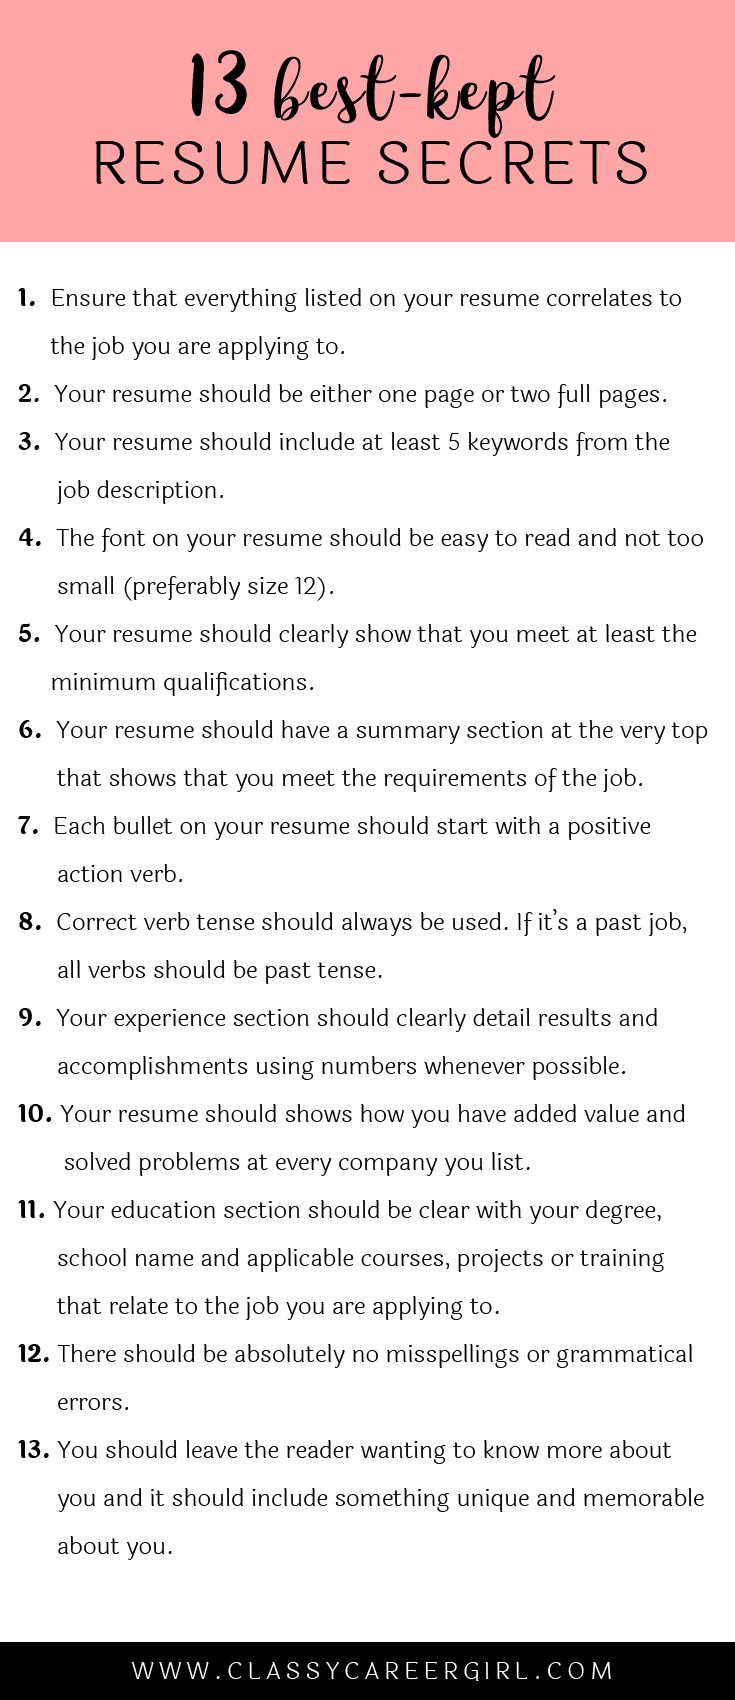 Opposenewapstandardsus  Sweet  Ideas About Resume On Pinterest  Cv Format Resume Cv And  With Luxury Some Hiring Managers Will Toss Your Resume Out If You Dont Know These  With Adorable Functional Resume Format Also Good Resume Objective In Addition Good Objectives For Resumes And Food Server Resume As Well As How To Write The Perfect Resume Additionally How To Make A Resume For Job From Pinterestcom With Opposenewapstandardsus  Luxury  Ideas About Resume On Pinterest  Cv Format Resume Cv And  With Adorable Some Hiring Managers Will Toss Your Resume Out If You Dont Know These  And Sweet Functional Resume Format Also Good Resume Objective In Addition Good Objectives For Resumes From Pinterestcom